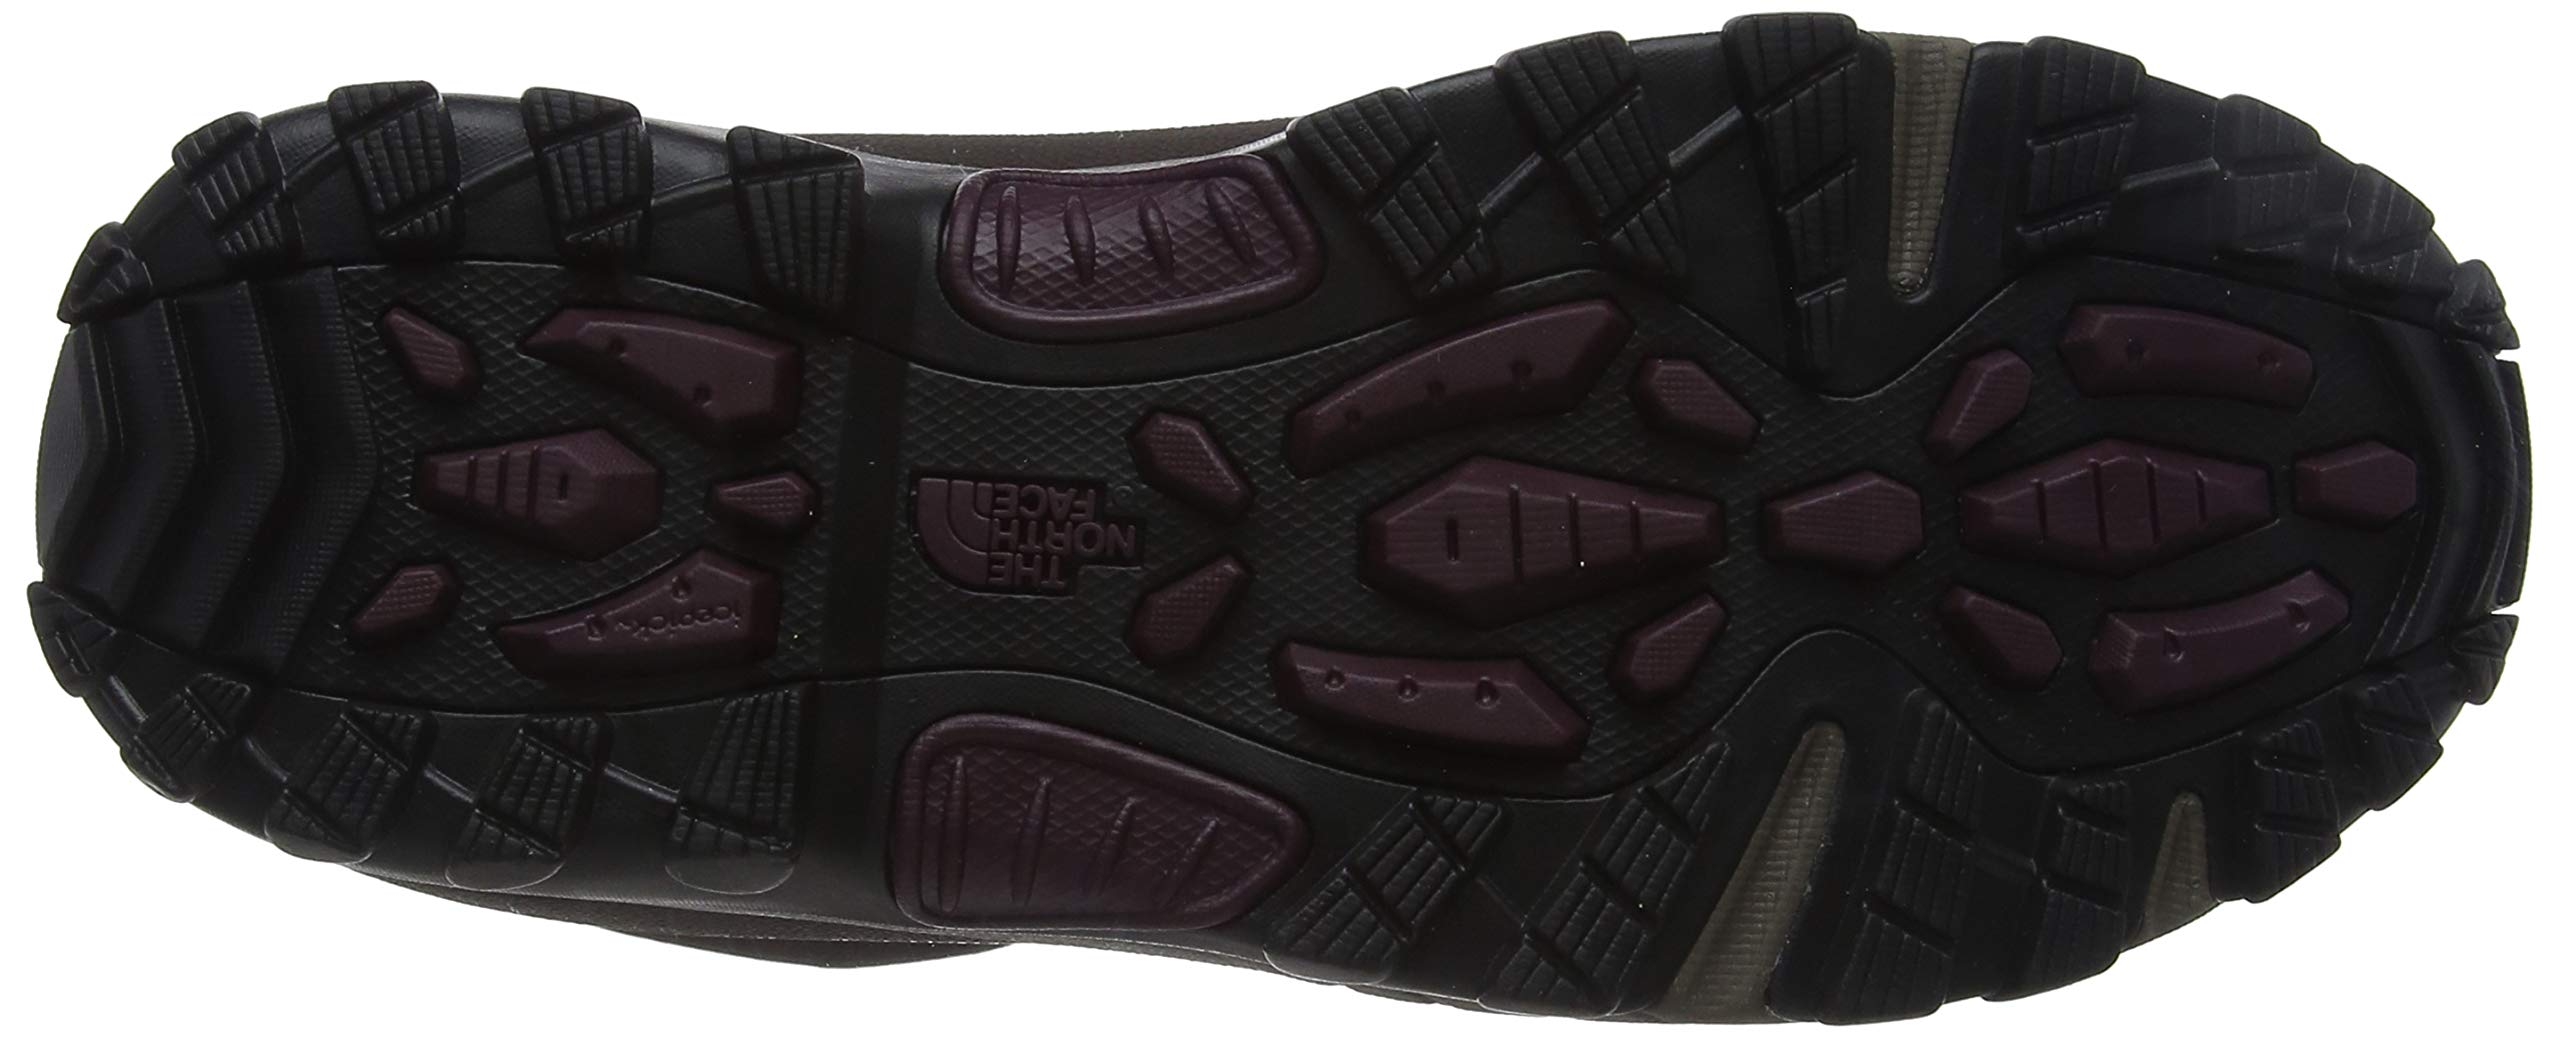 7124Sr3FSDL - THE NORTH FACE Men's Chilkat Iii High Rise Hiking Boots